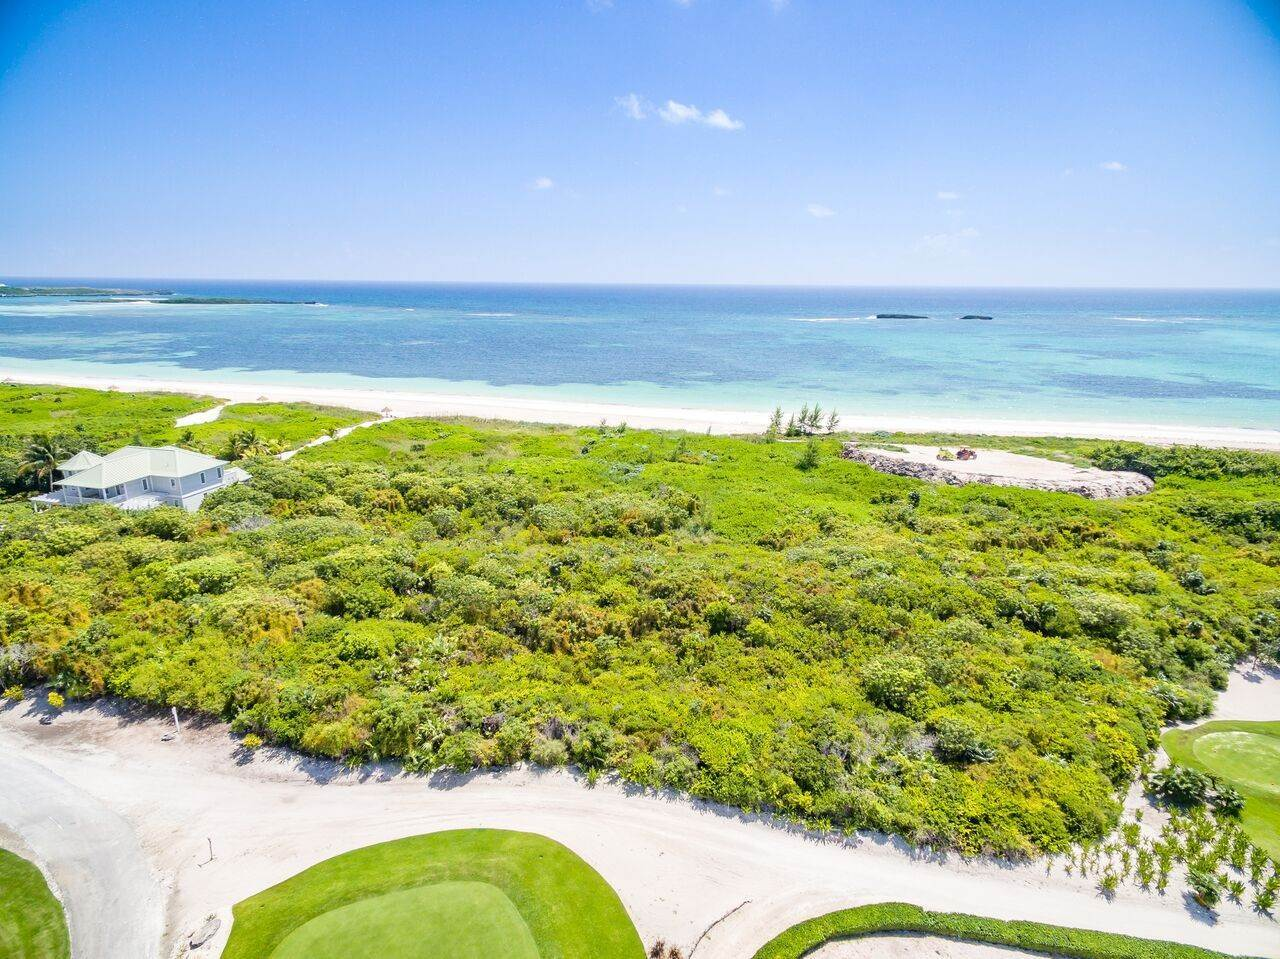 Land for Sale at Stunning Beachfront Lot - MLS 35308 Winding Bay, Abaco, Bahamas